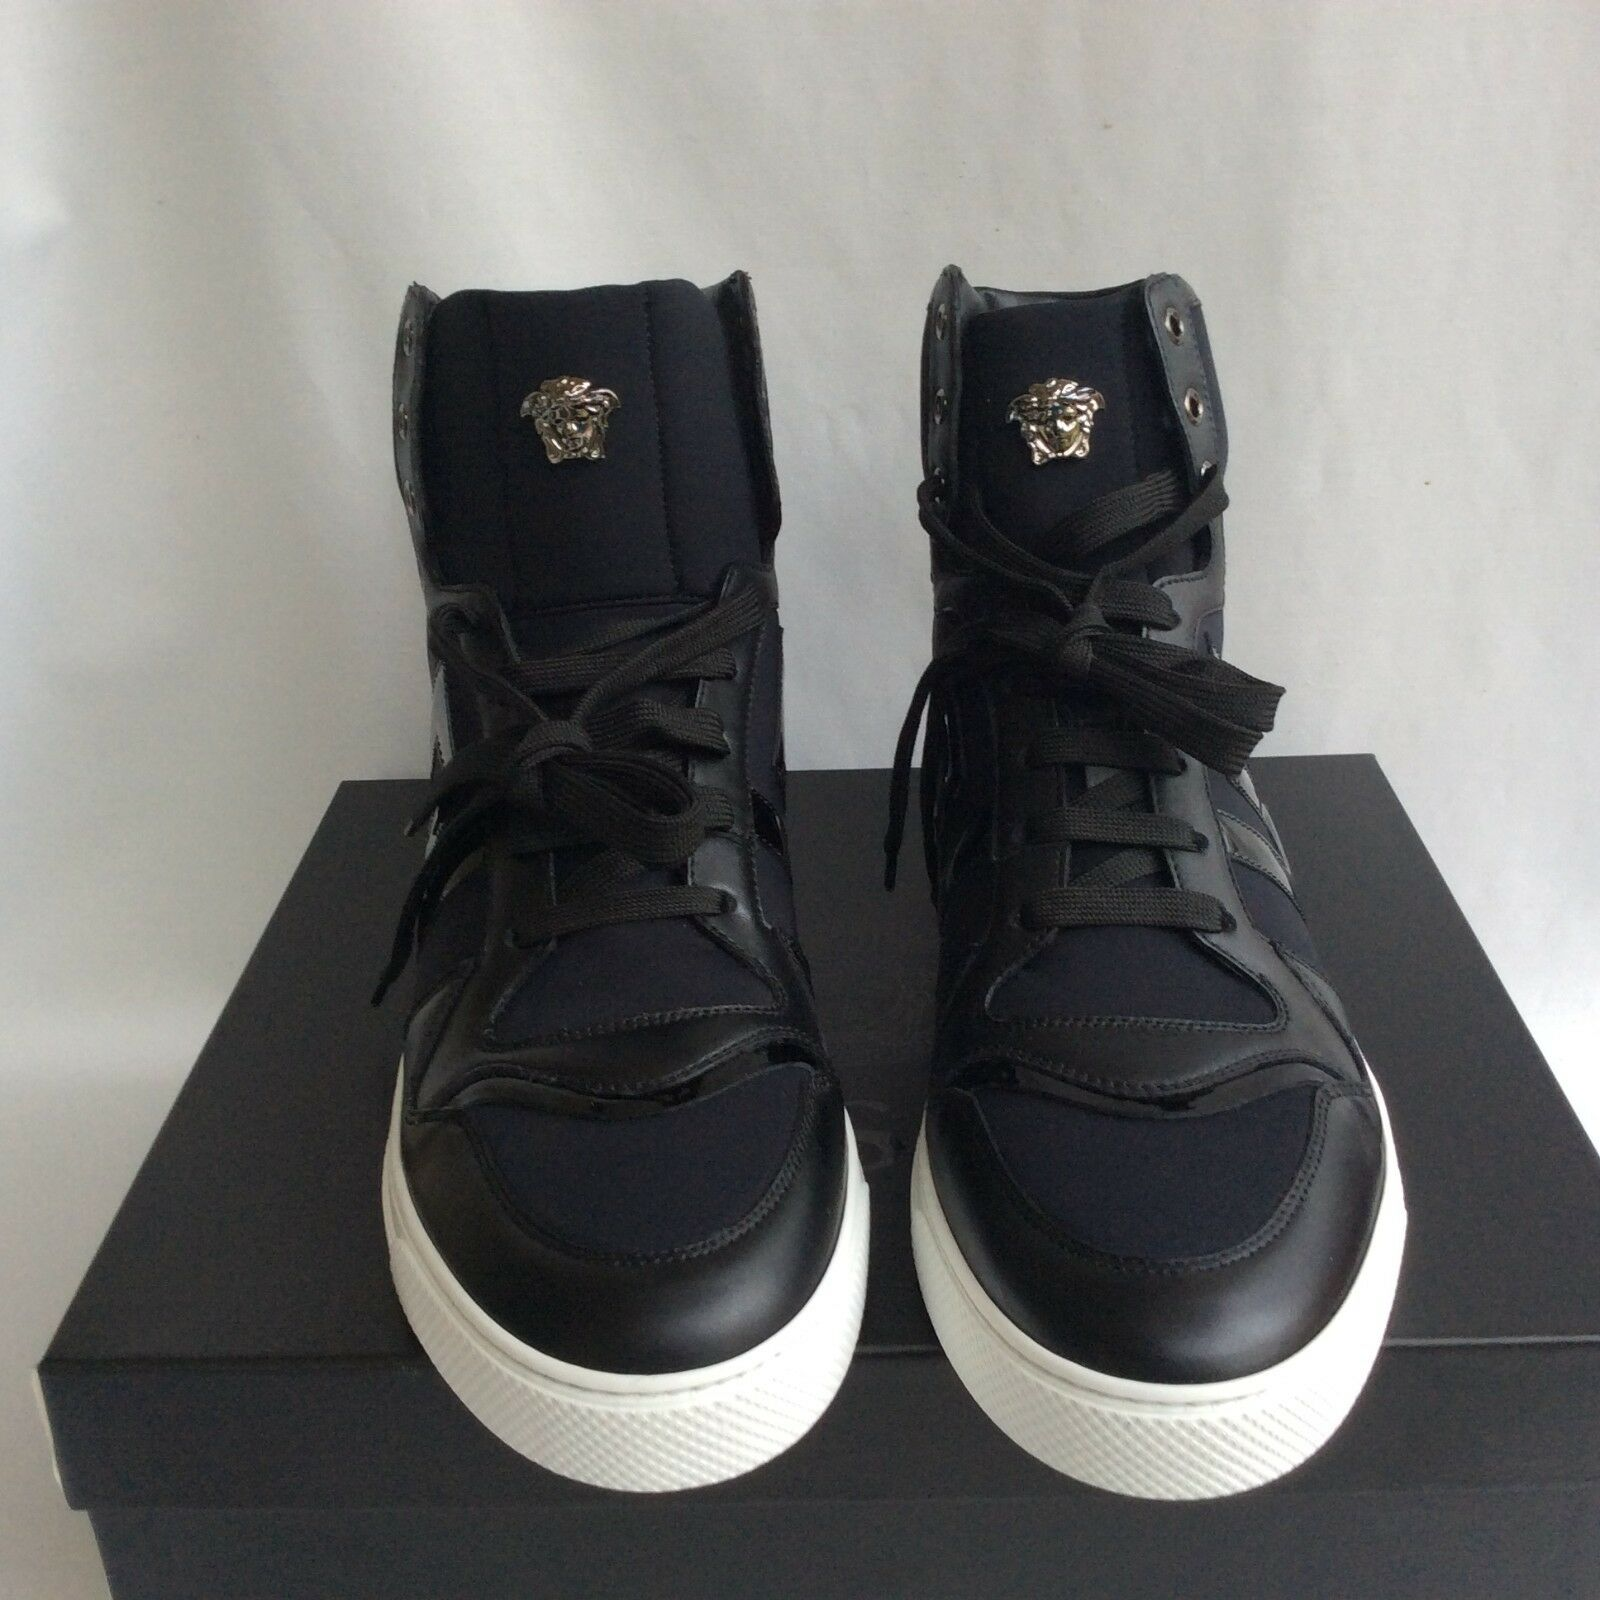 NIB Versace Black Leather High Top Trainers Sneakers EU45  US12 Medusa Auth. 850